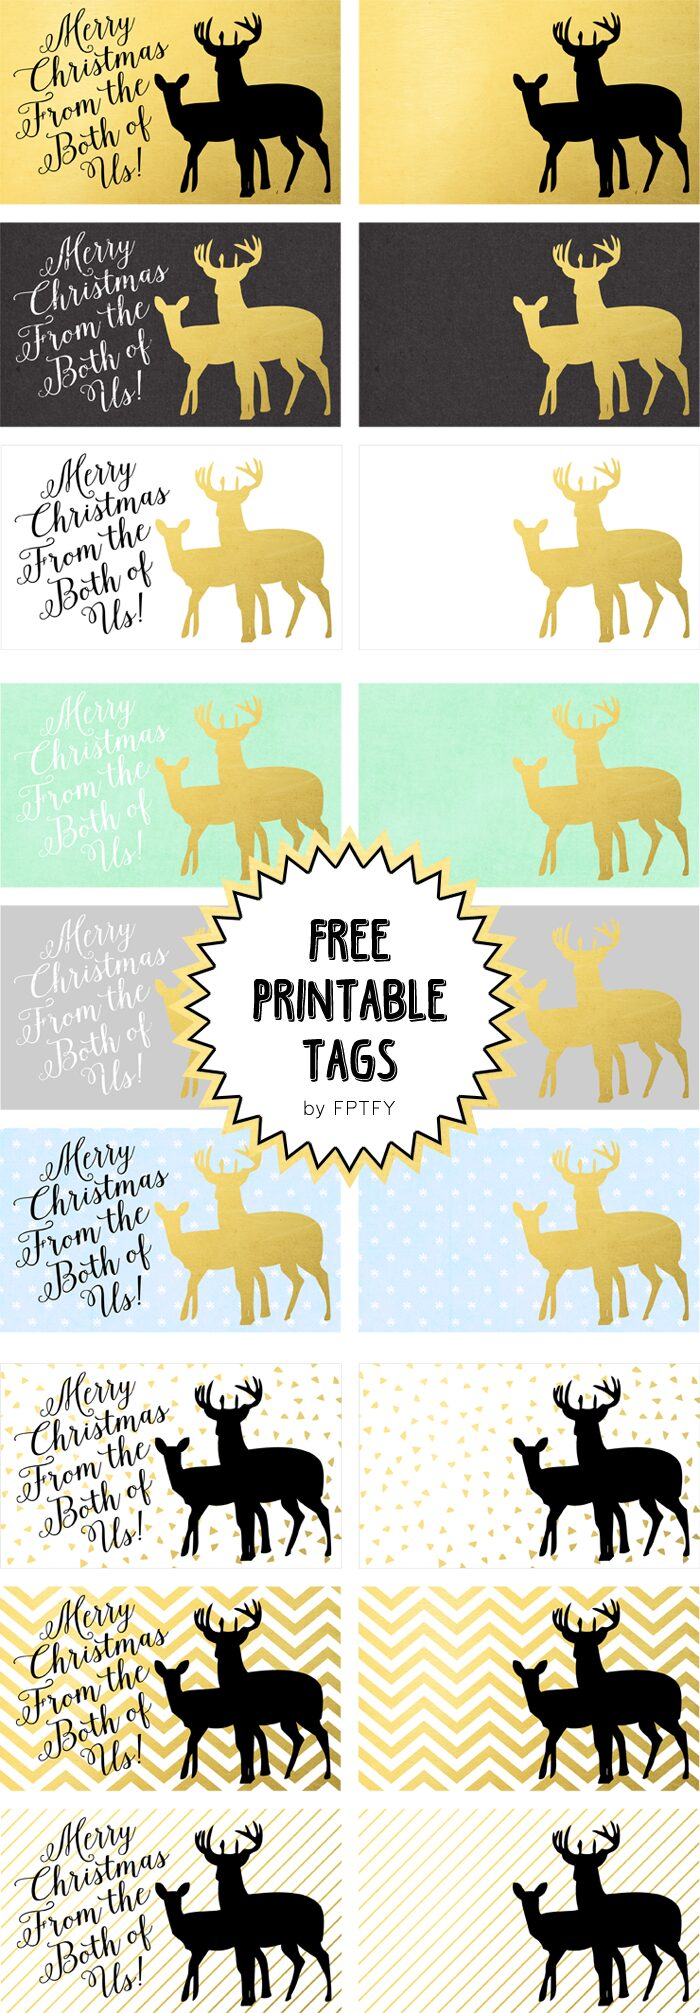 Printable_Gift_Tags_Merry_Christmas_from_the_both_of_us_FPTFY_1